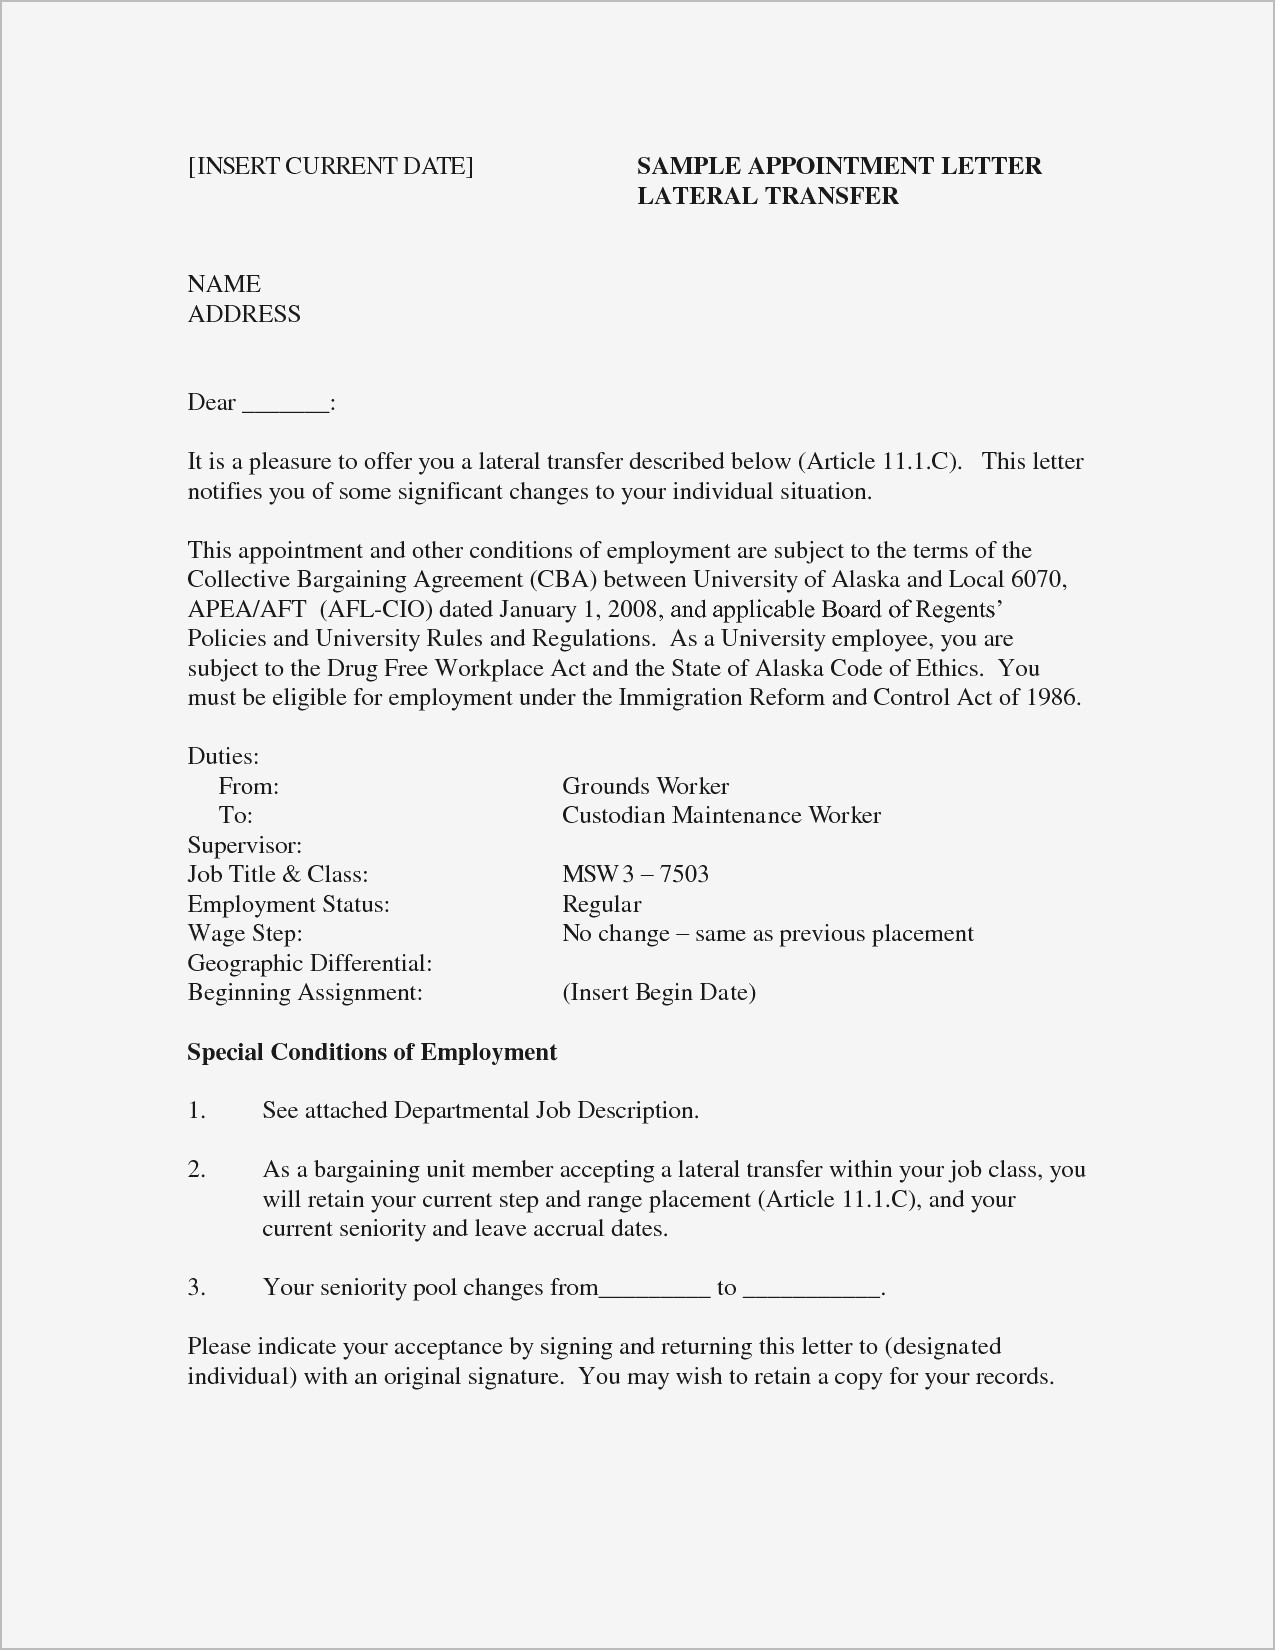 Formal Job Offer Letter Template - Sample for Job Fer Letter Valid Job Fer Letter Template Us Copy Od